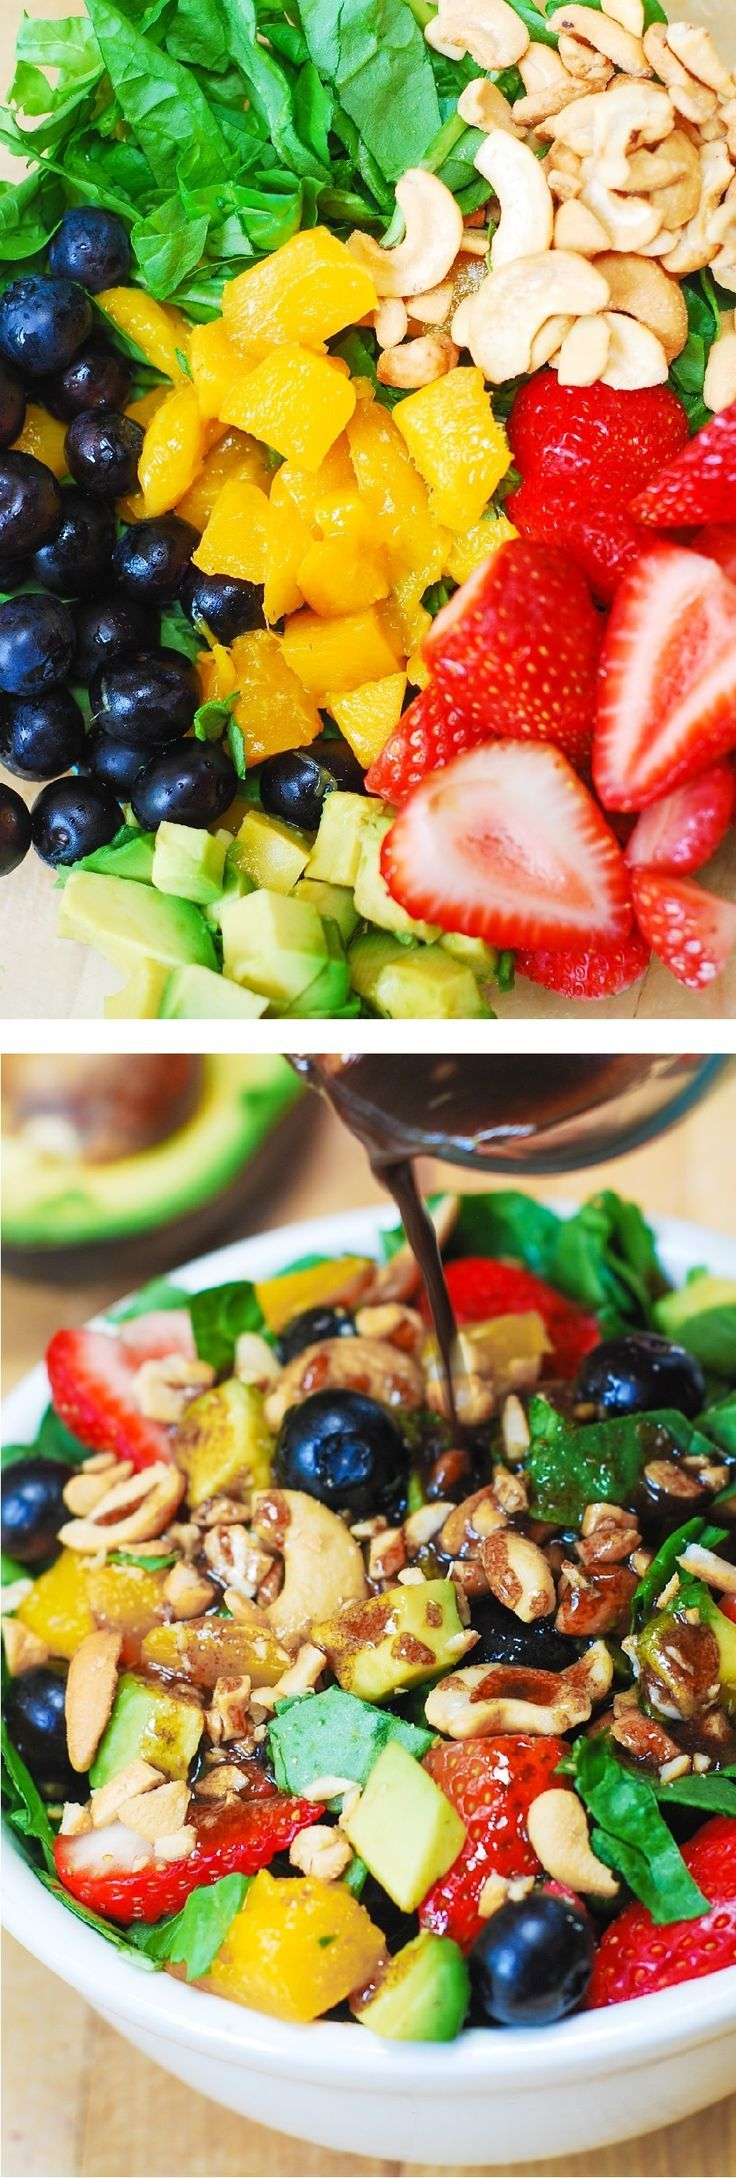 SPRING SALAD: Strawberry Spinach Salad, with Blueberries, Mango, Avocado, and Cashew nuts + homemade Balsamic Vinaigrette salad dressing.